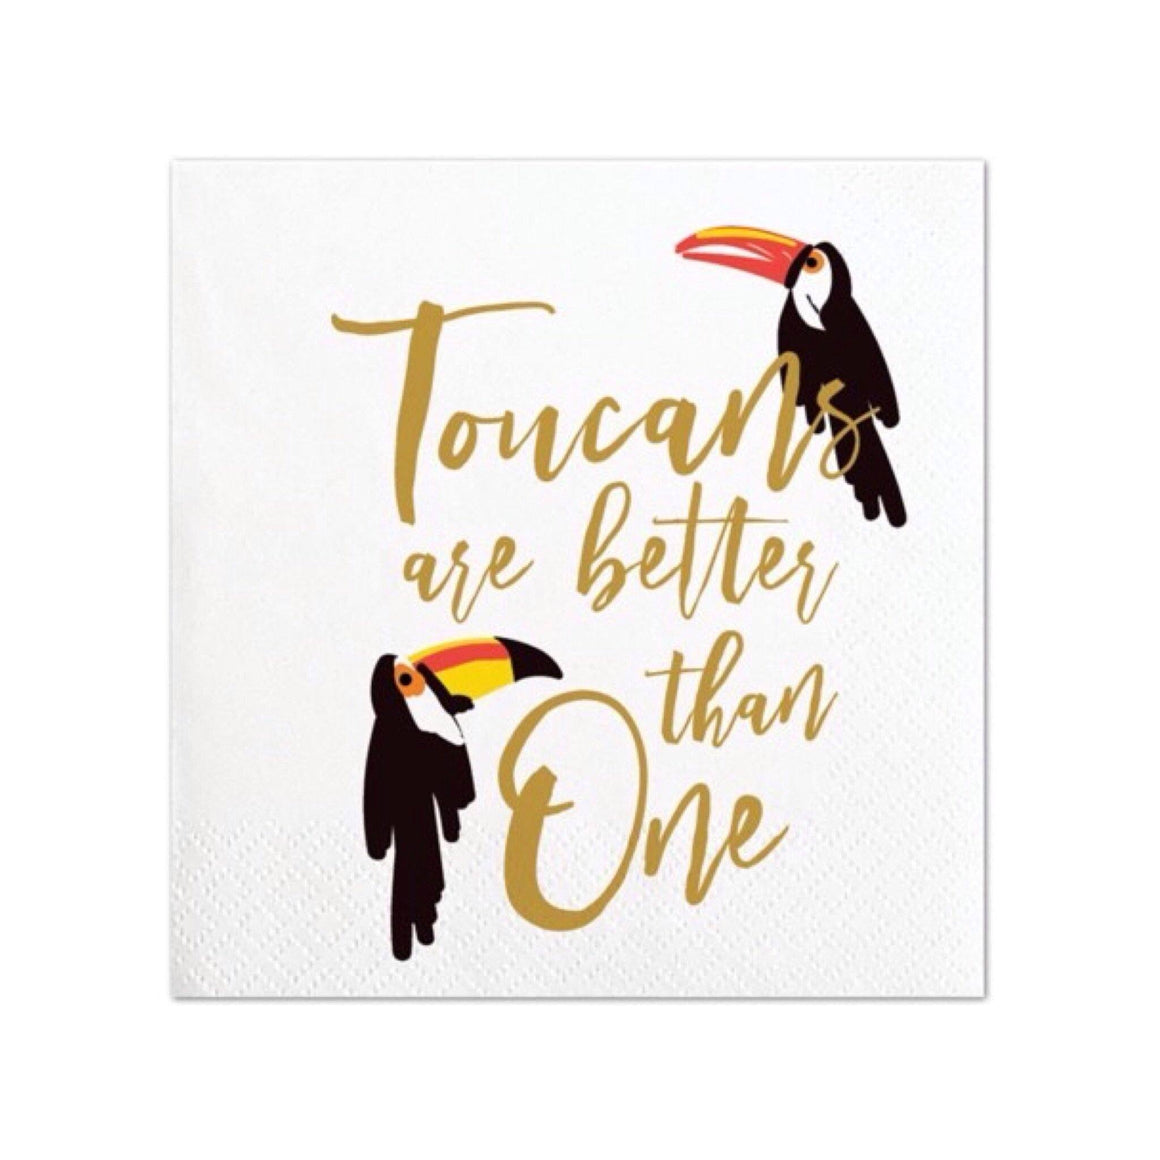 NAPKINS - COCKTAIL TOUCANS ARE BETTER